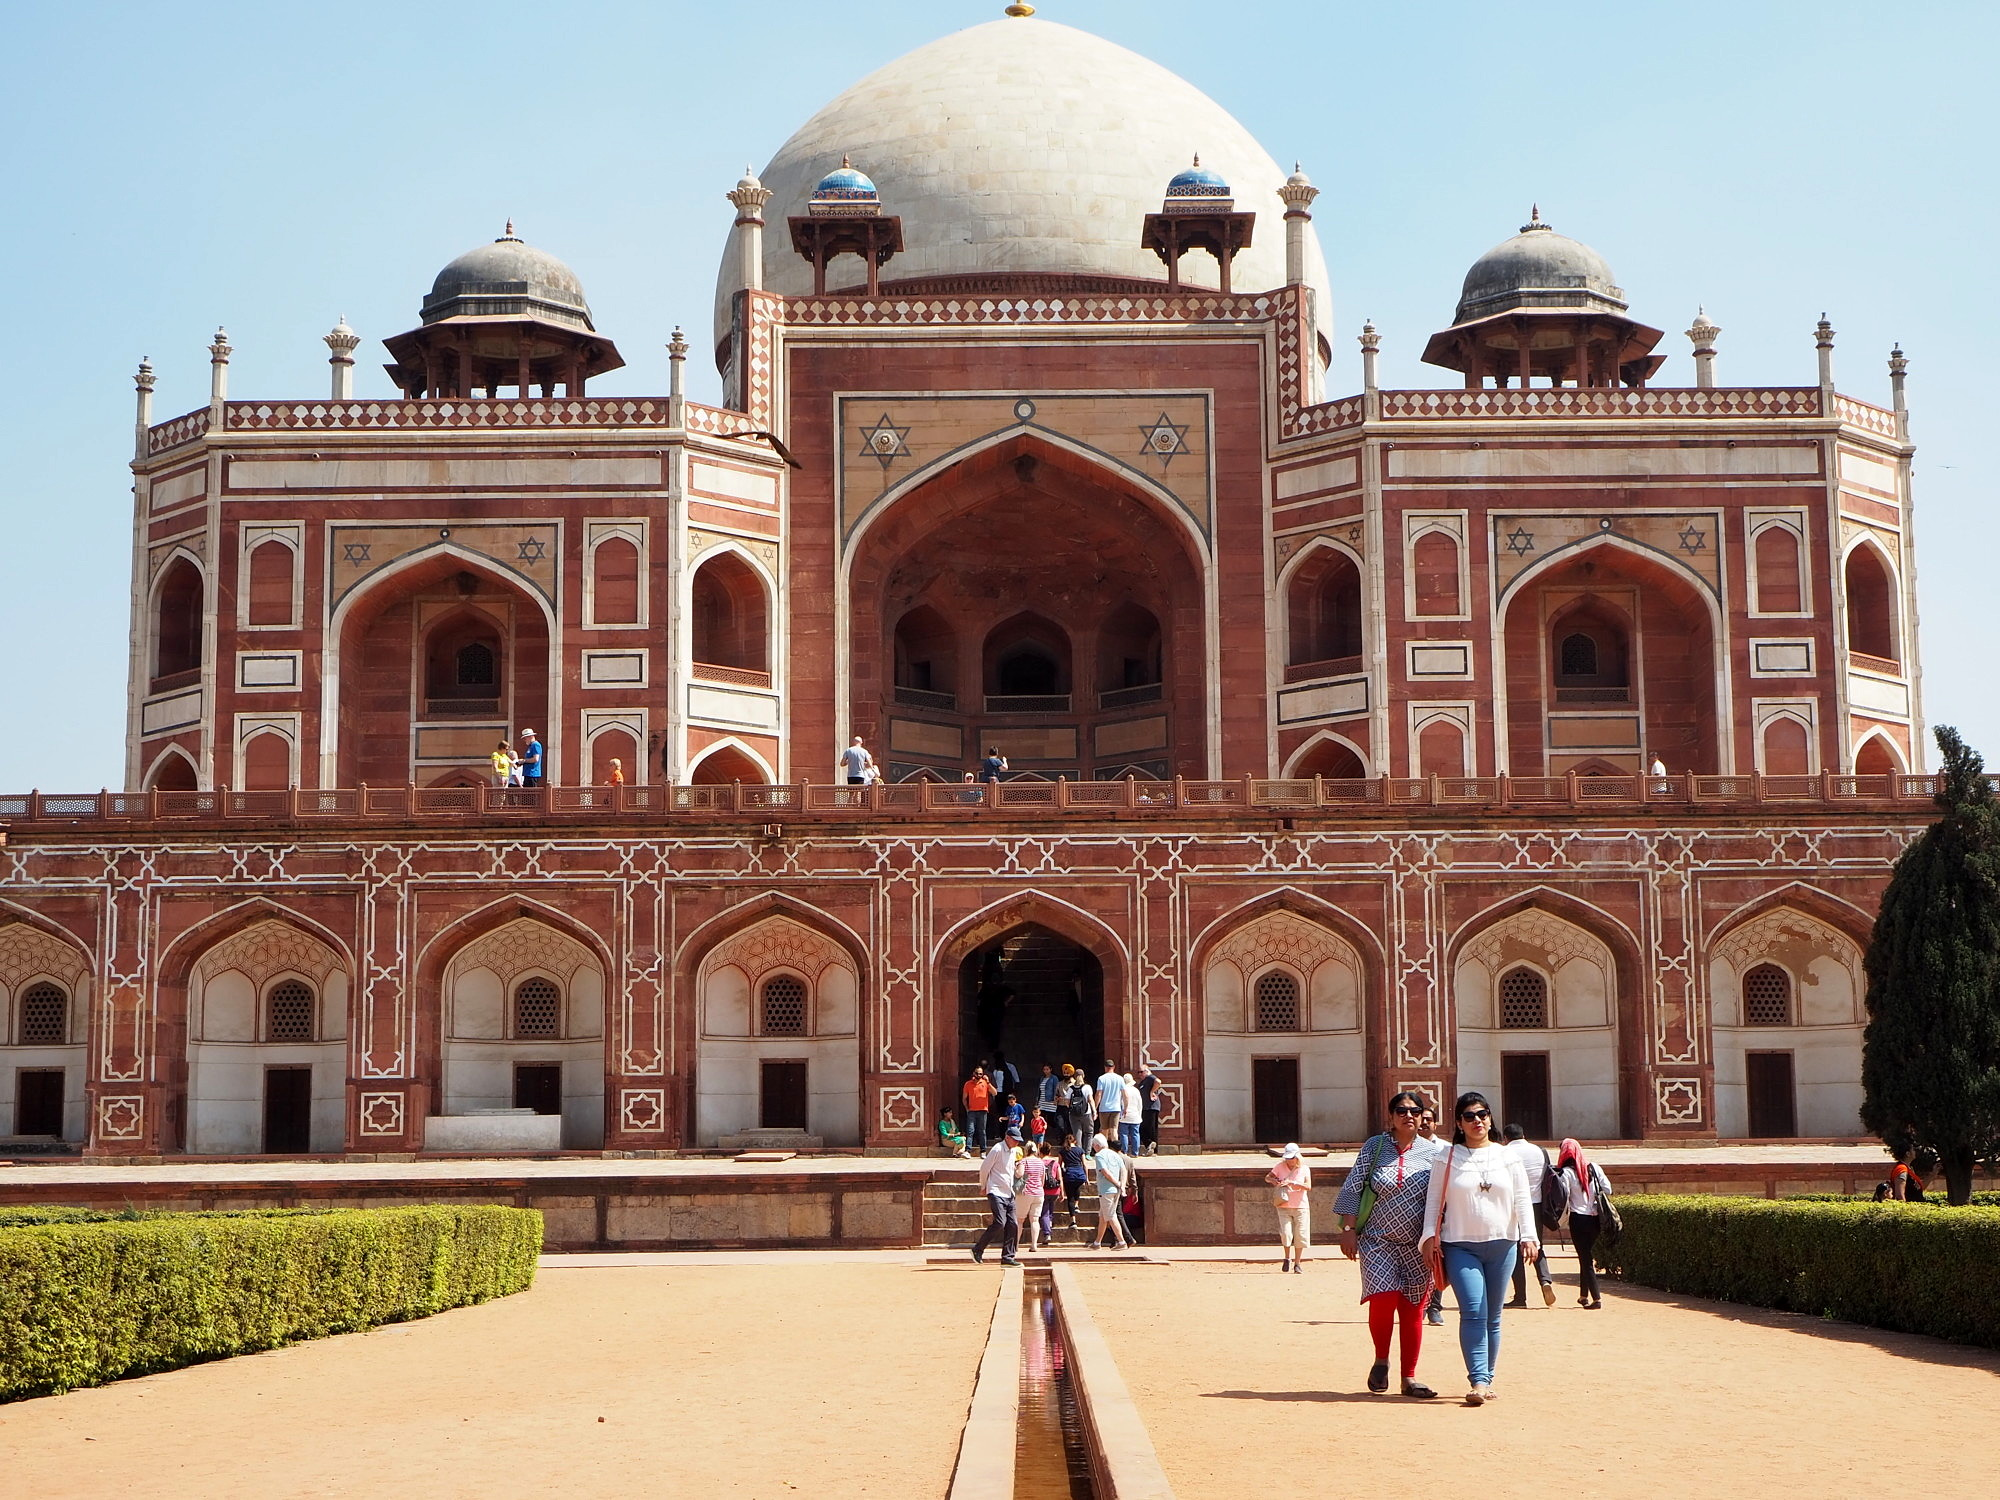 At Humayun's Tomb: A brownish-red building with a white pattern and several domes in different sizes on the roof. Some visitors are on and around the building.